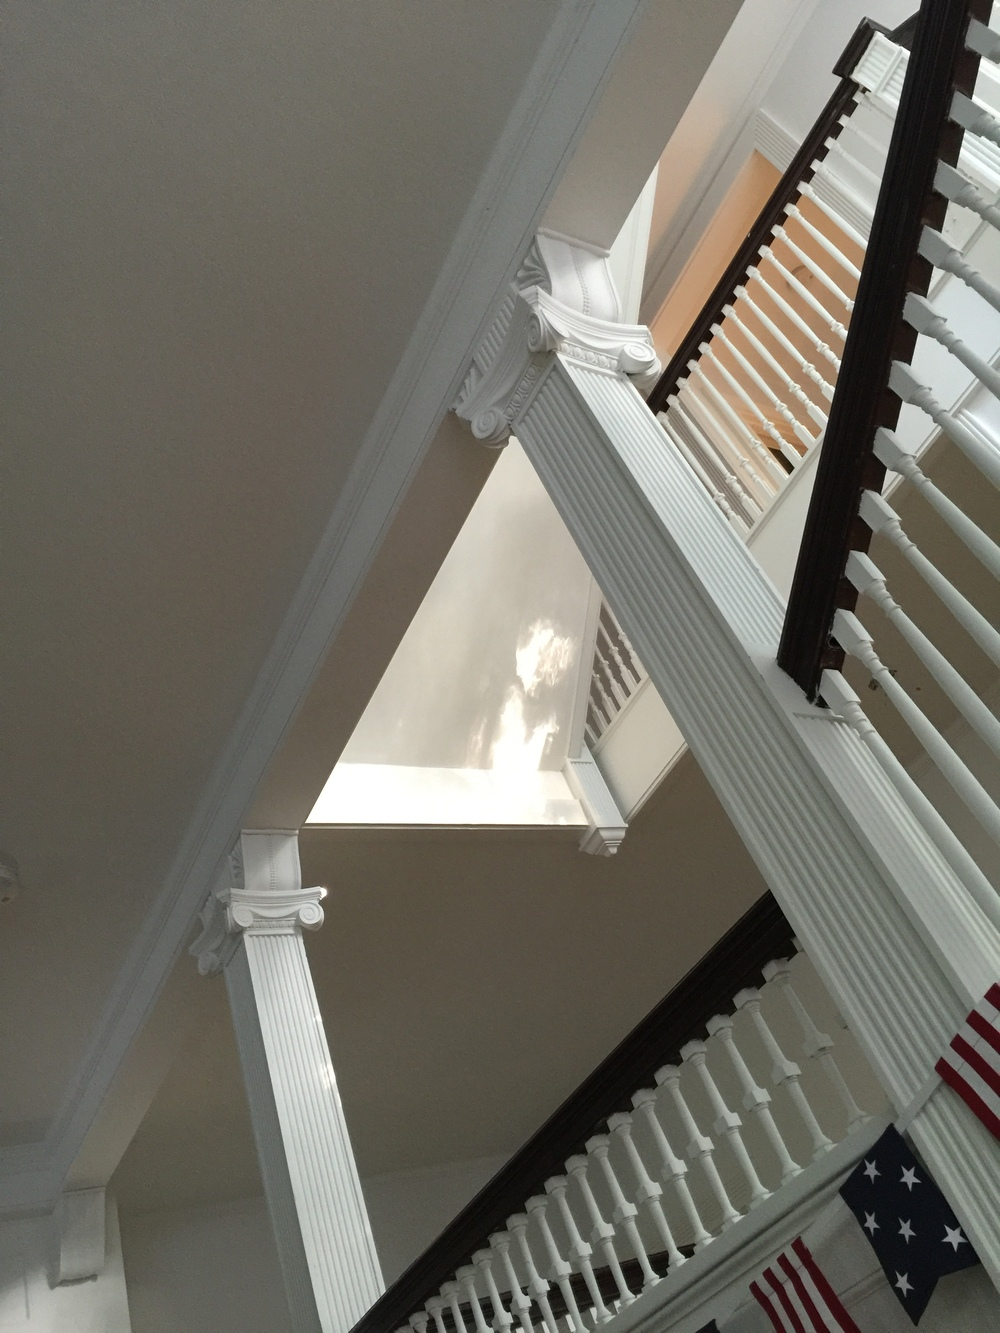 We can't help but appreciate the architectural detail within the columns and railings of the gracious stairwell.